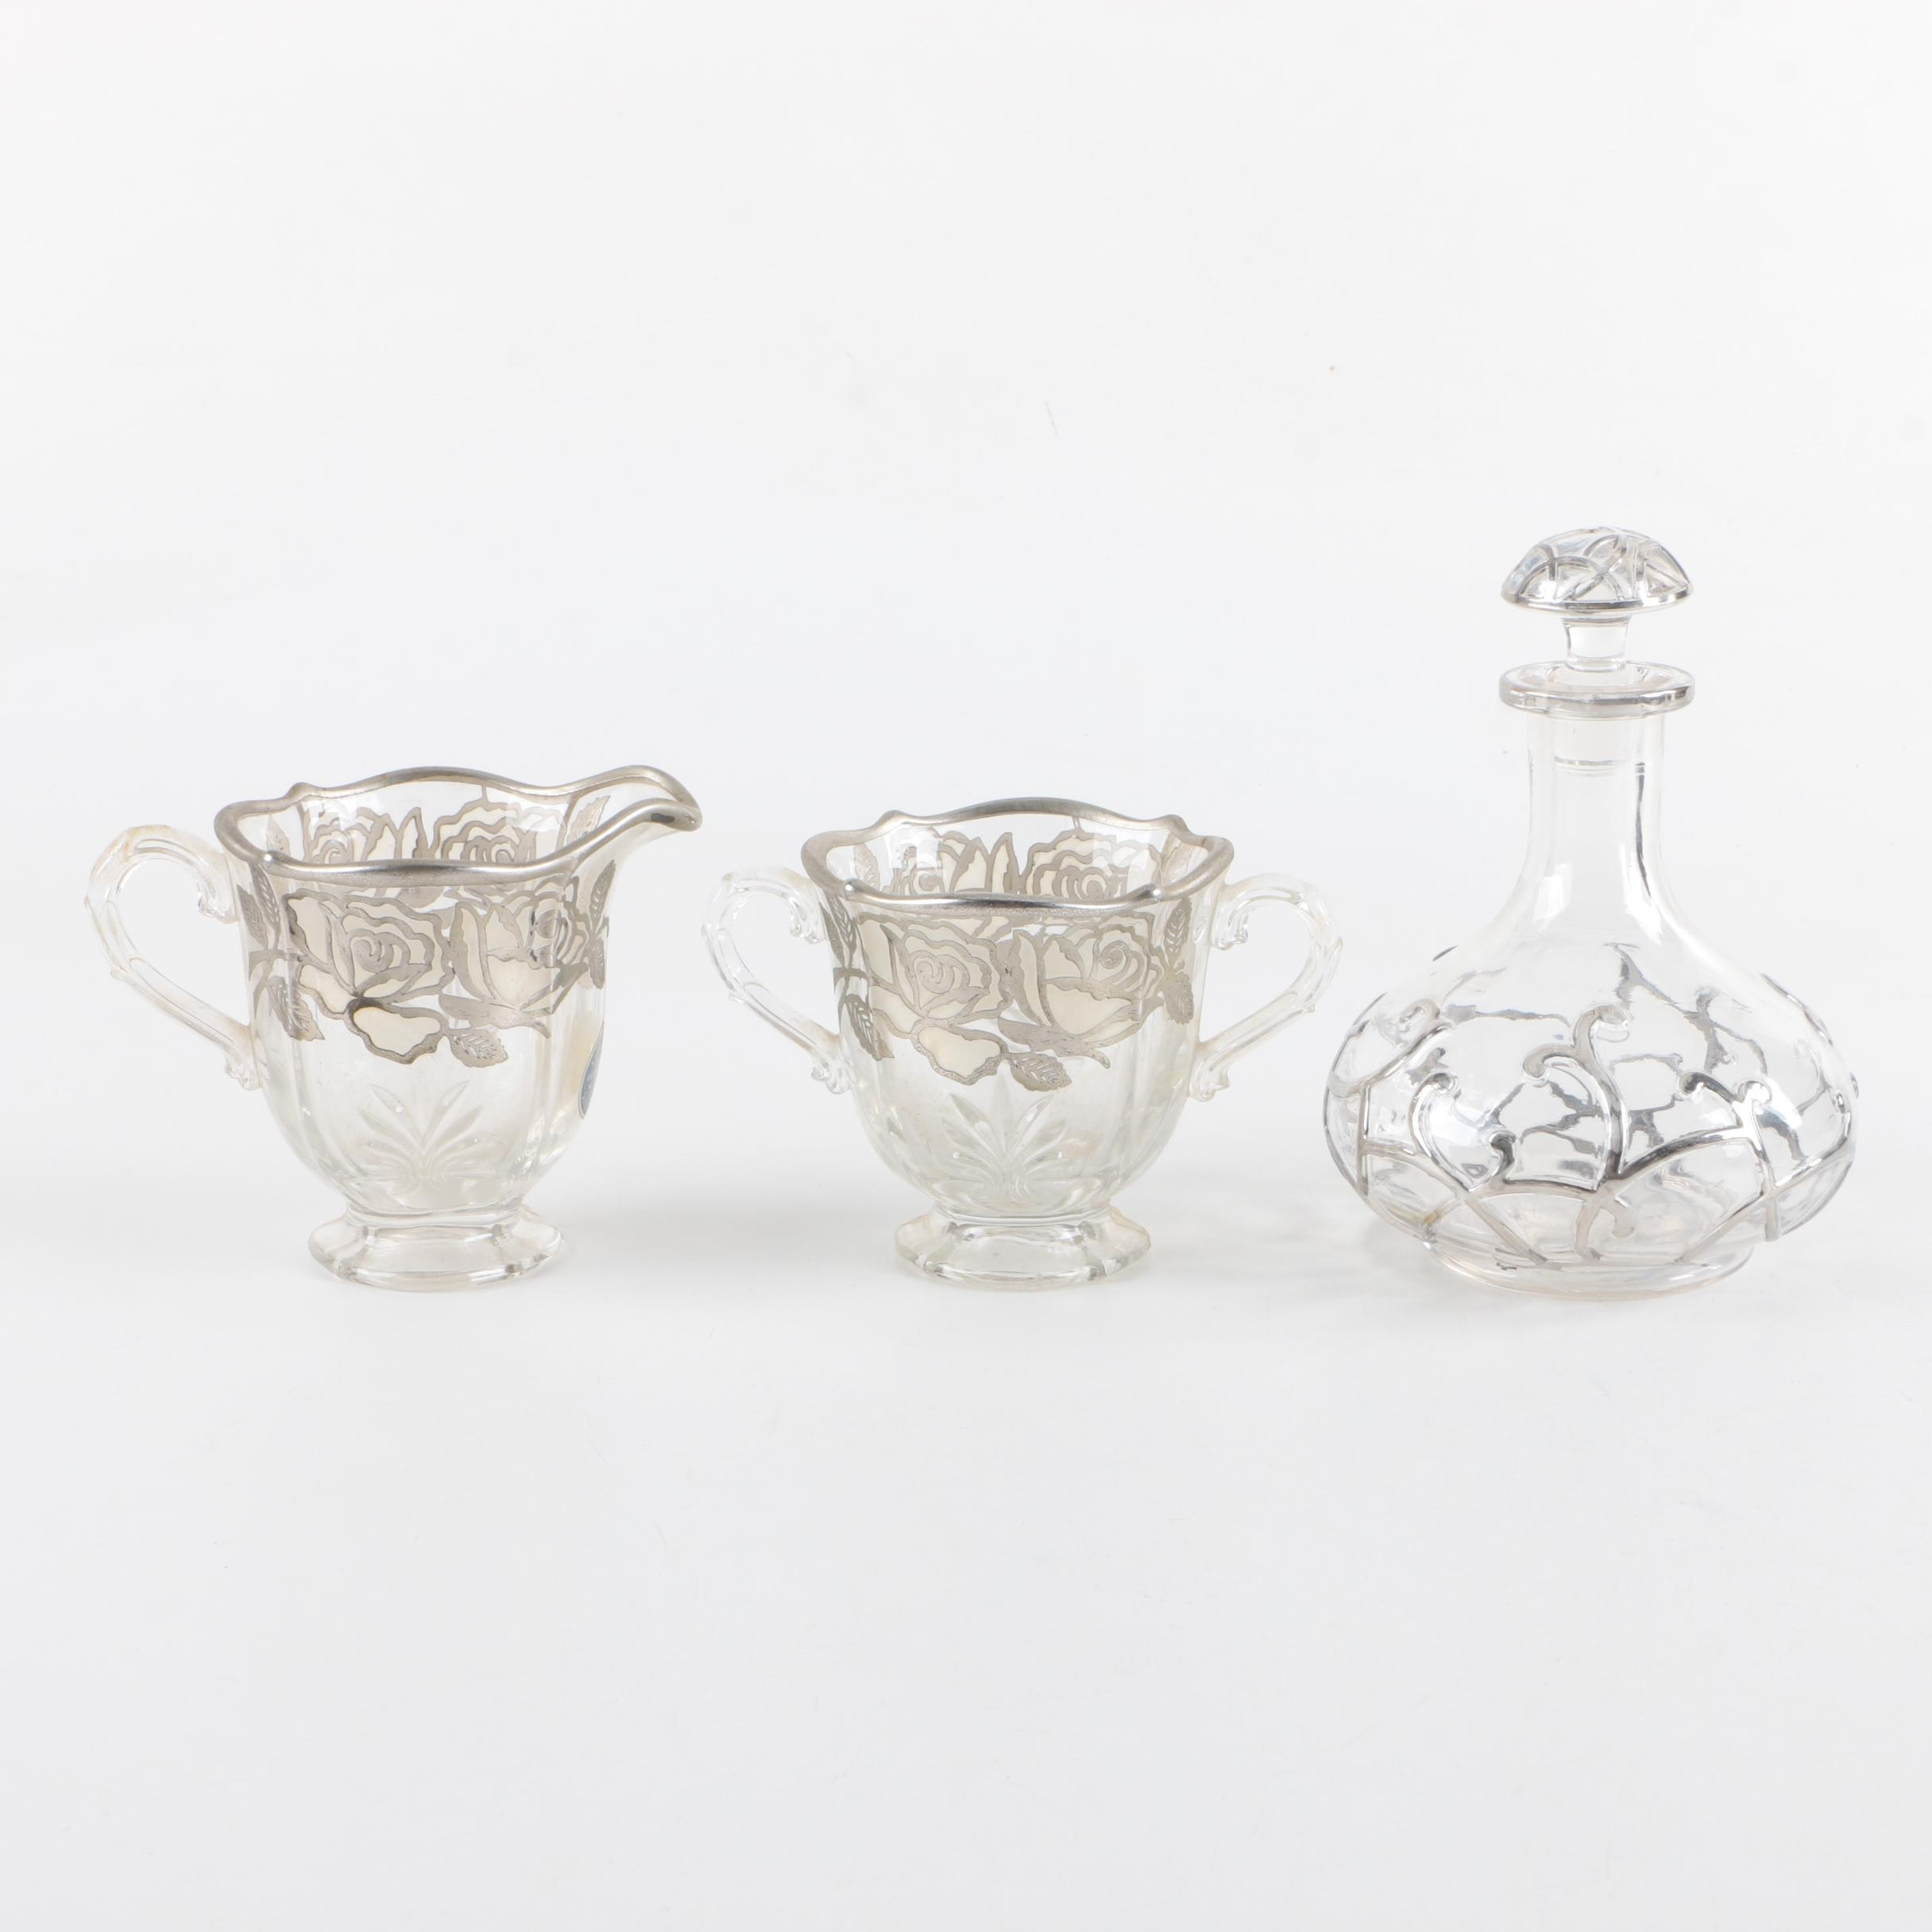 National Silver Deposit Ware Sterling Overlay Creamer and Sugar with Decanter